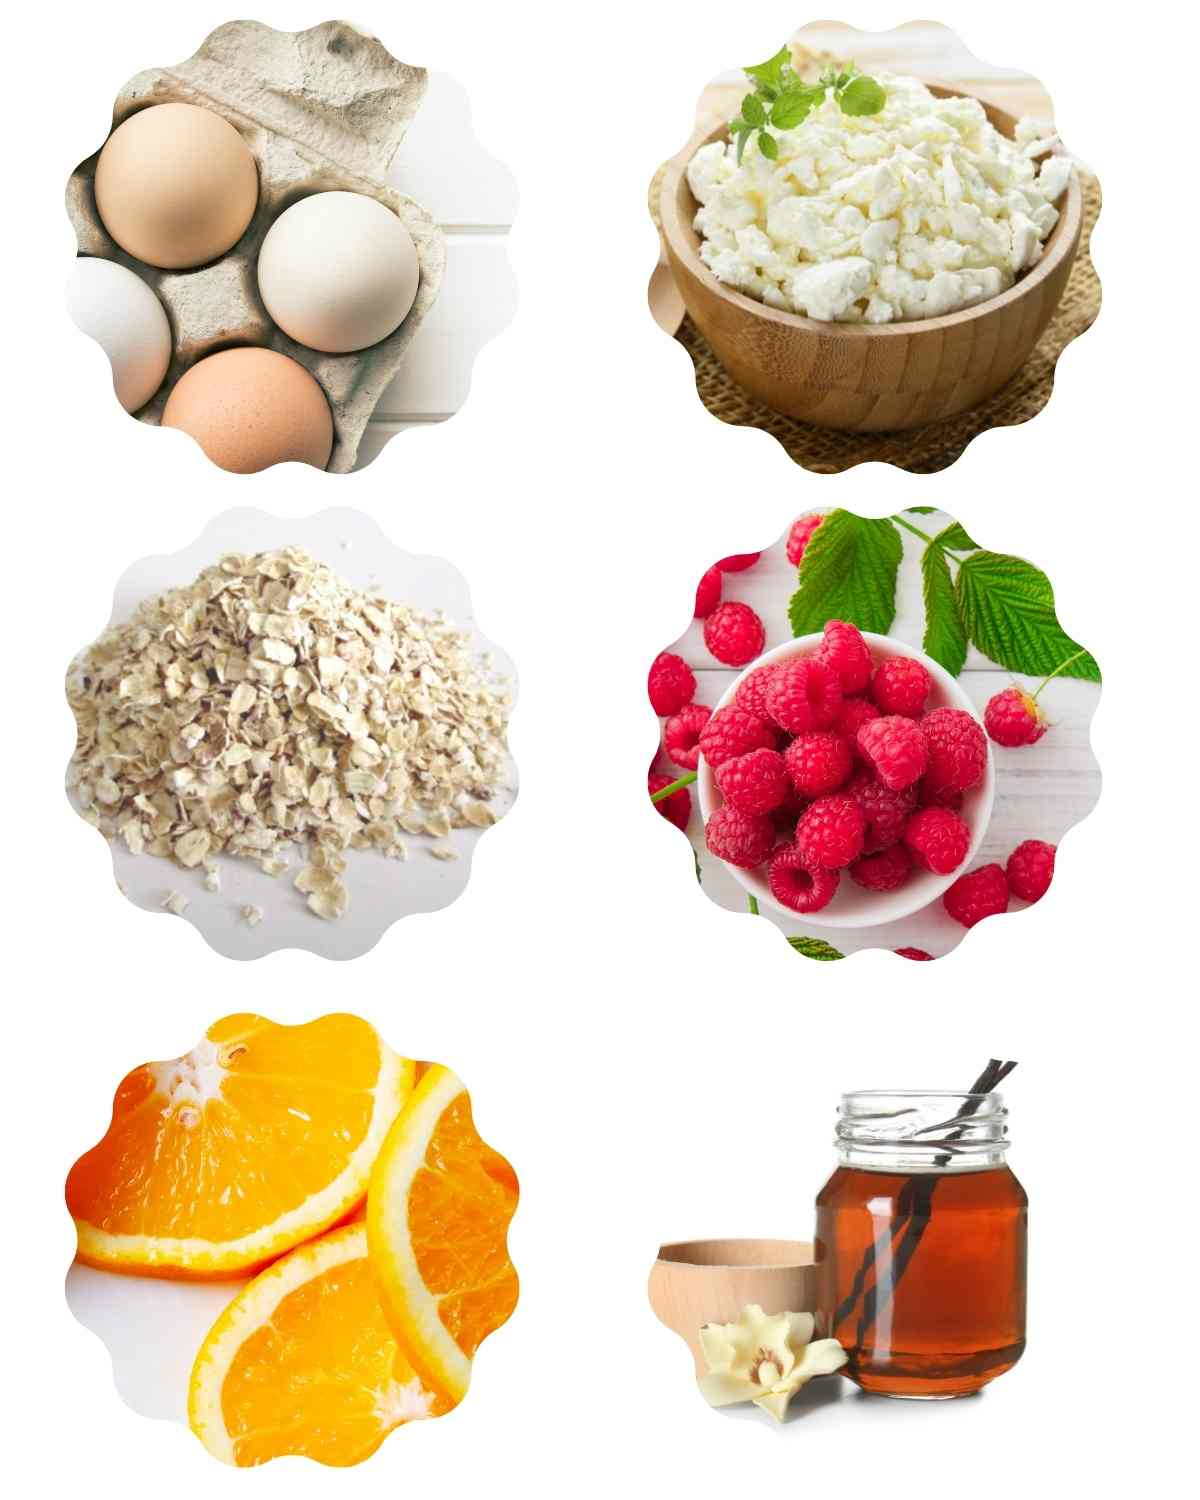 Ingredients for making gluten free protein pancakes including eggs, cottage cheese, oats, orange, raspberries, and vanila.